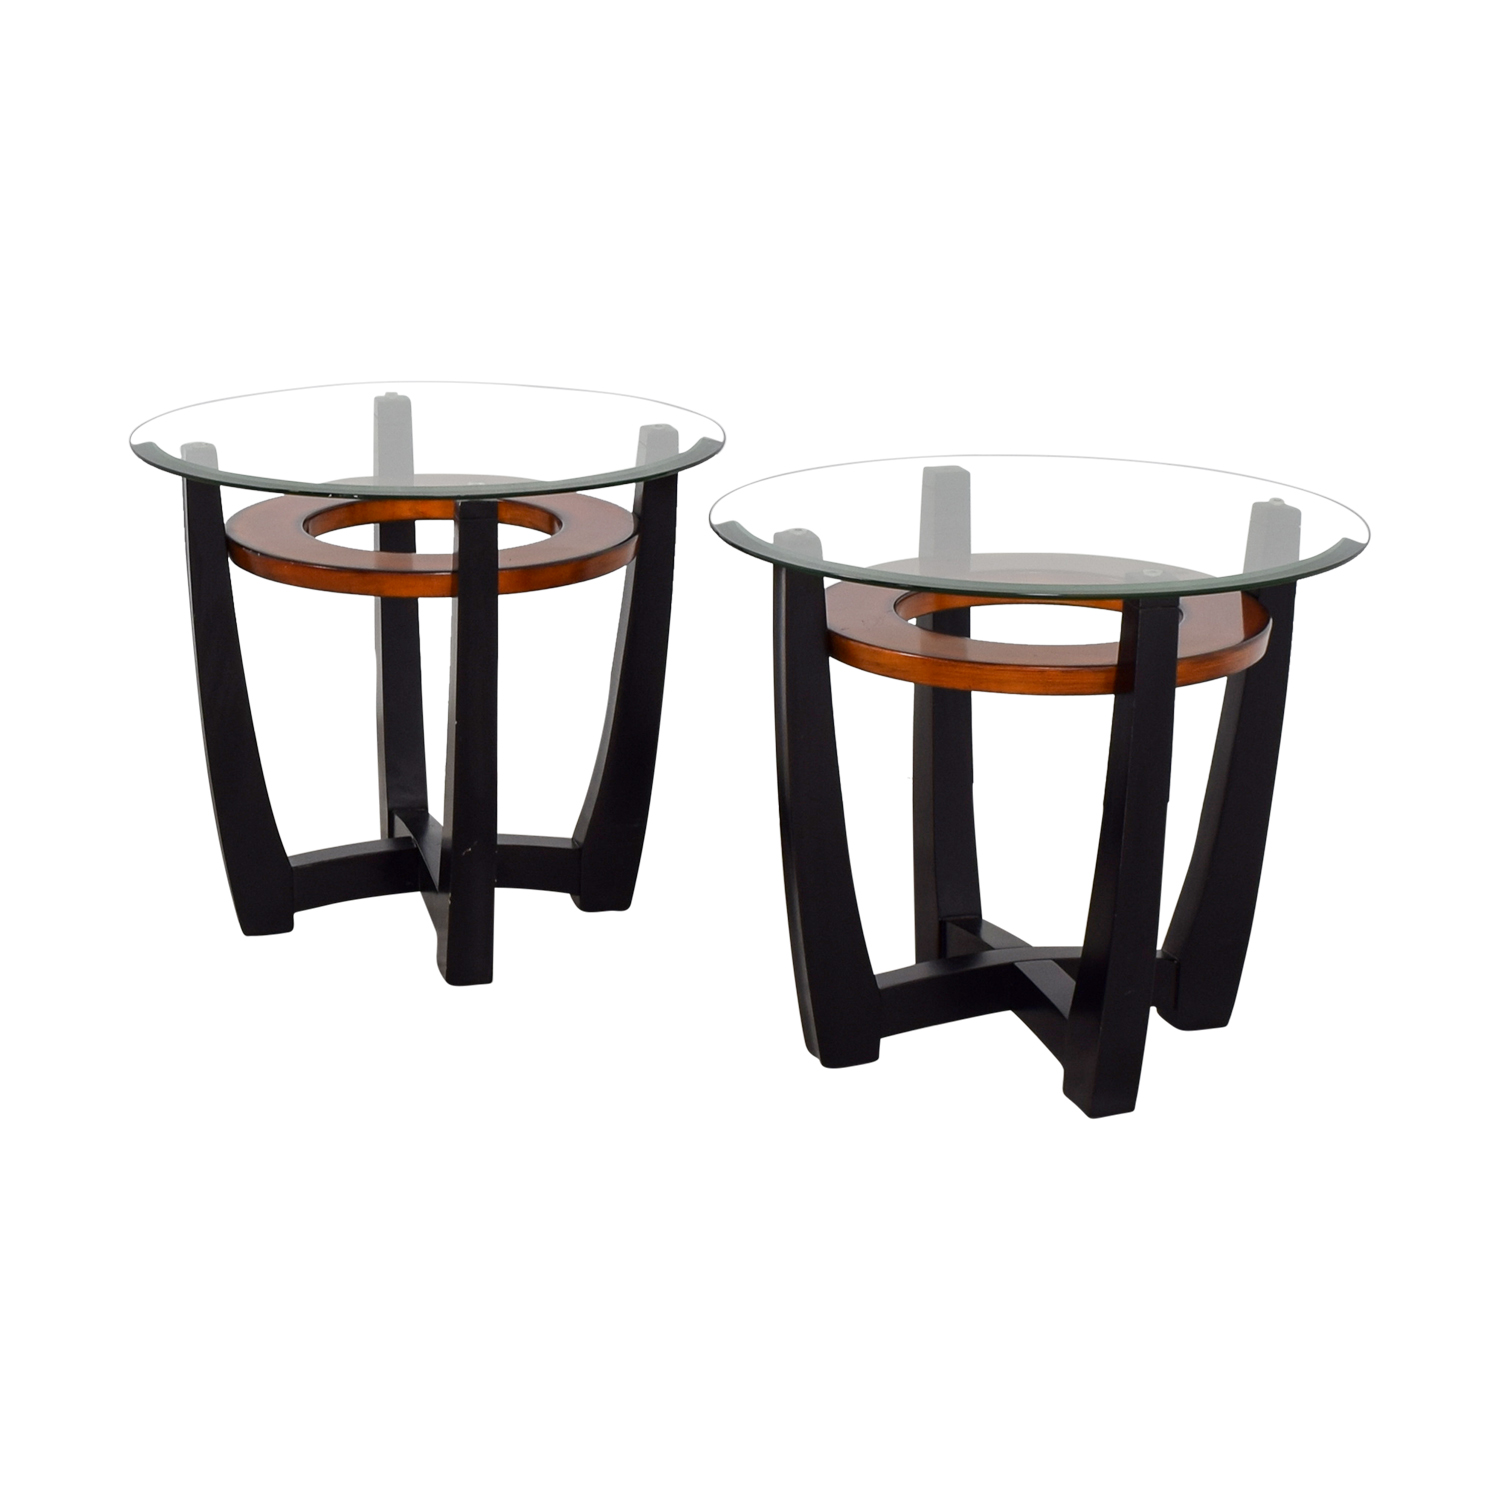 71 off elation elation round glass and wood end tables tables. Black Bedroom Furniture Sets. Home Design Ideas